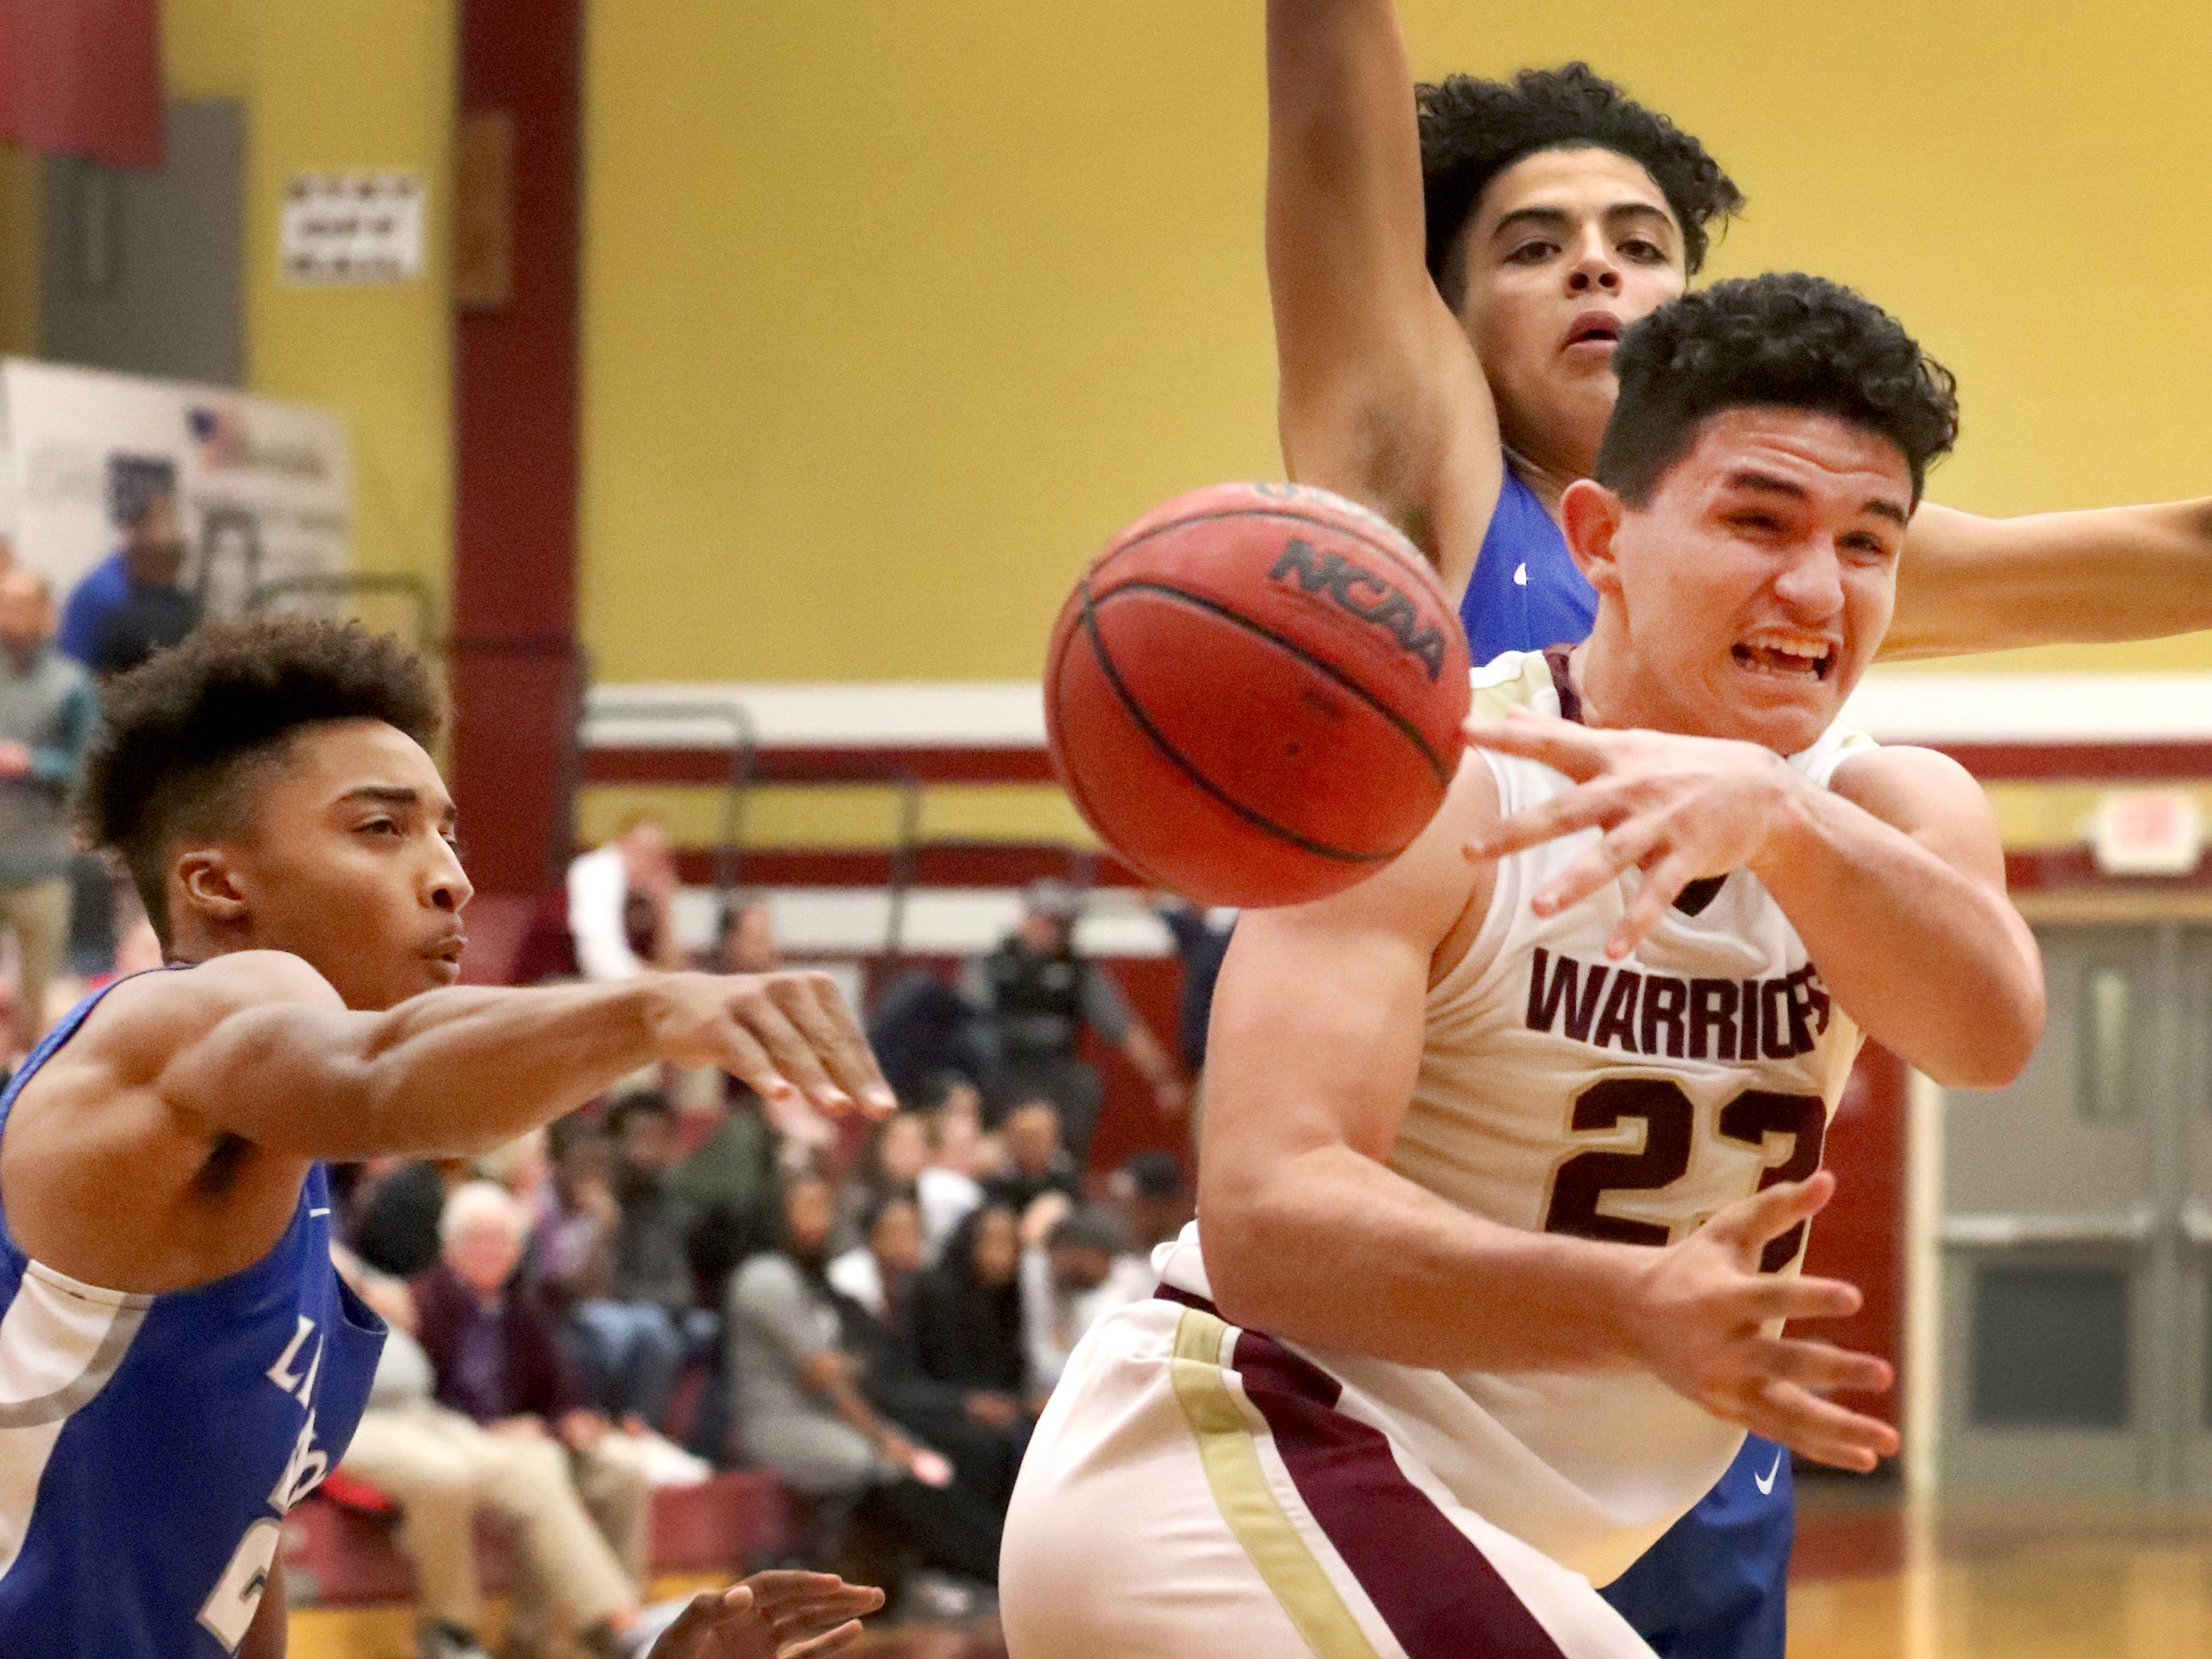 RiverdaleÕs Maliek McAllister (23) passes the ball under the basket as Lebanon's Polo Phillips (22) and Jackson Stafford (23) guards him during the game at Riverdale on Friday, Nov. 30, 2018.